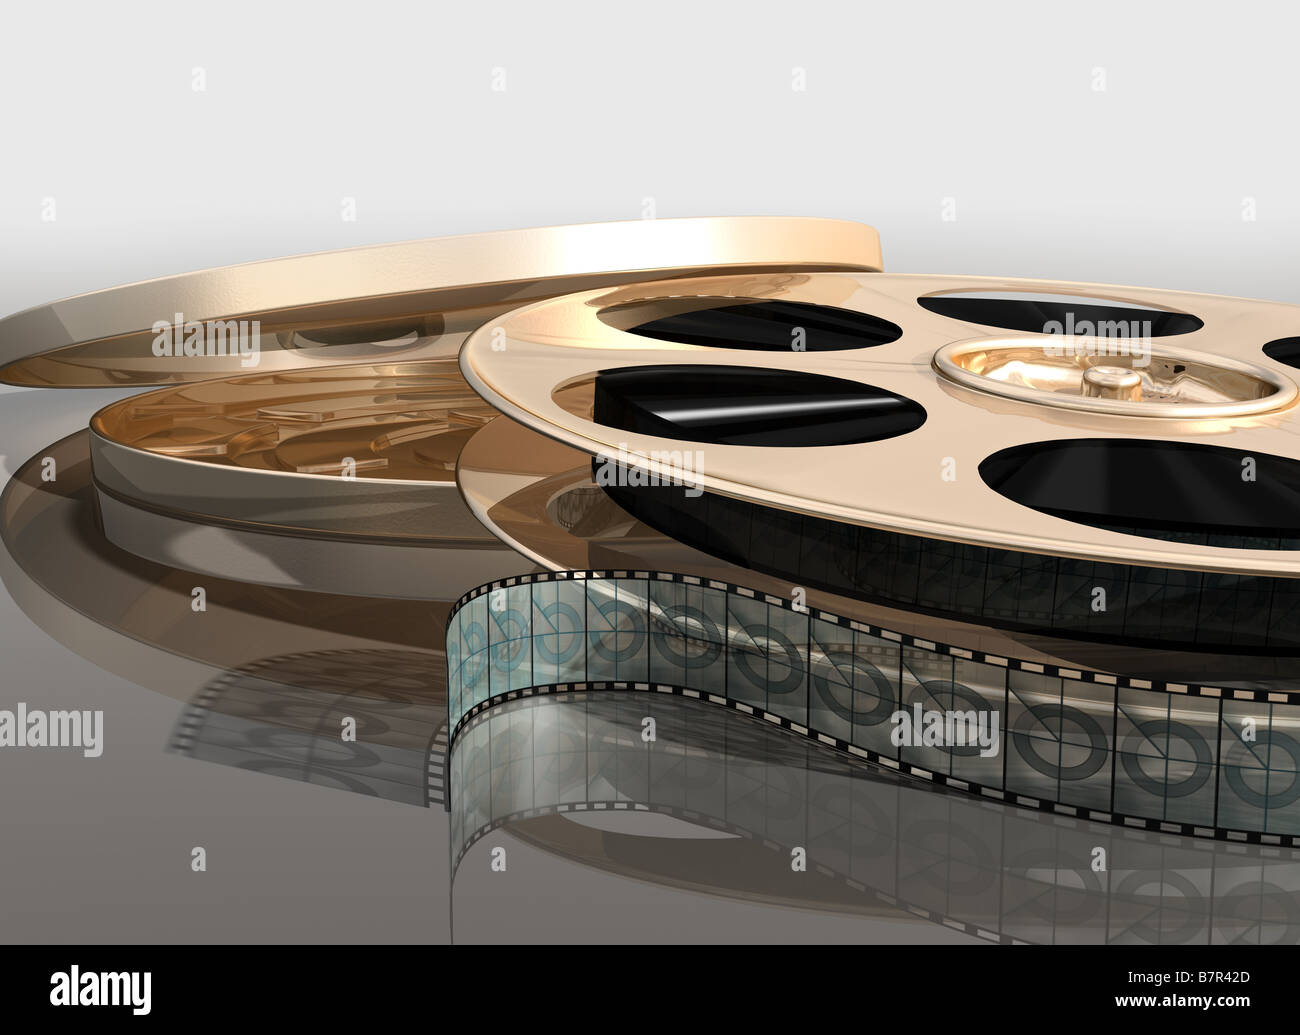 Illustration of a cinema film reel next to its canister - Stock Image